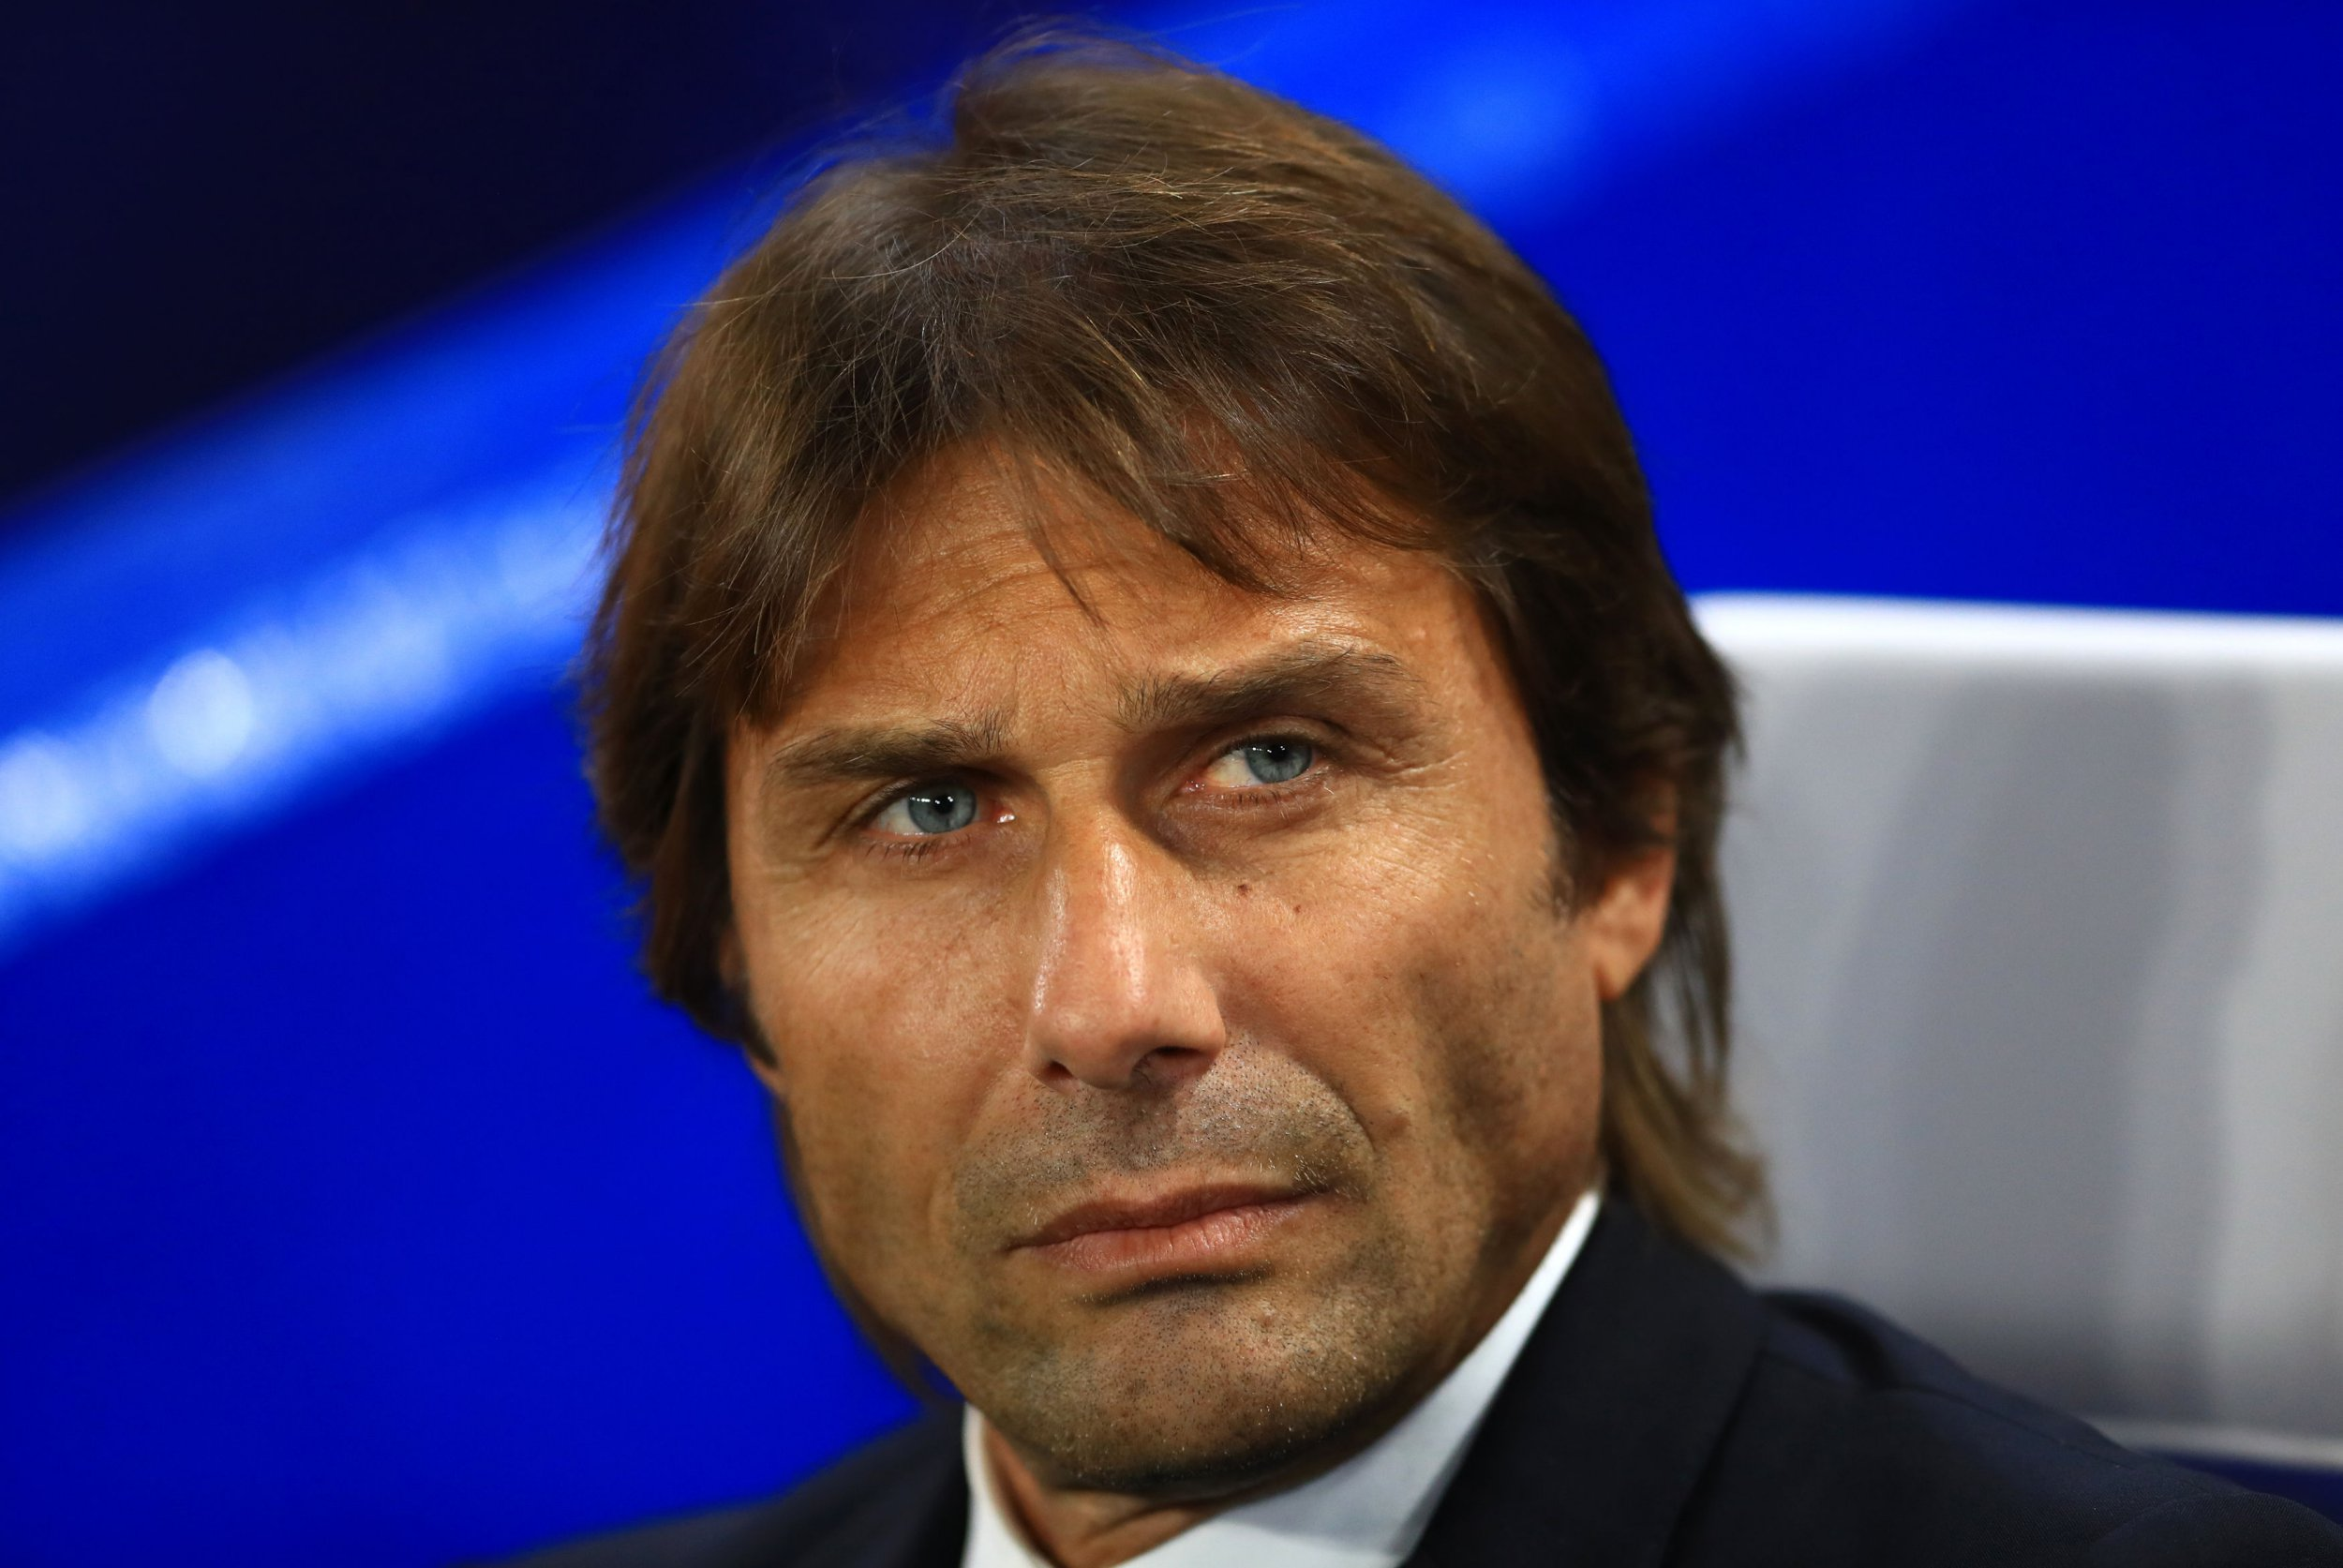 Antonio Conte threatens to drop Chelsea stars for questioning his decisions